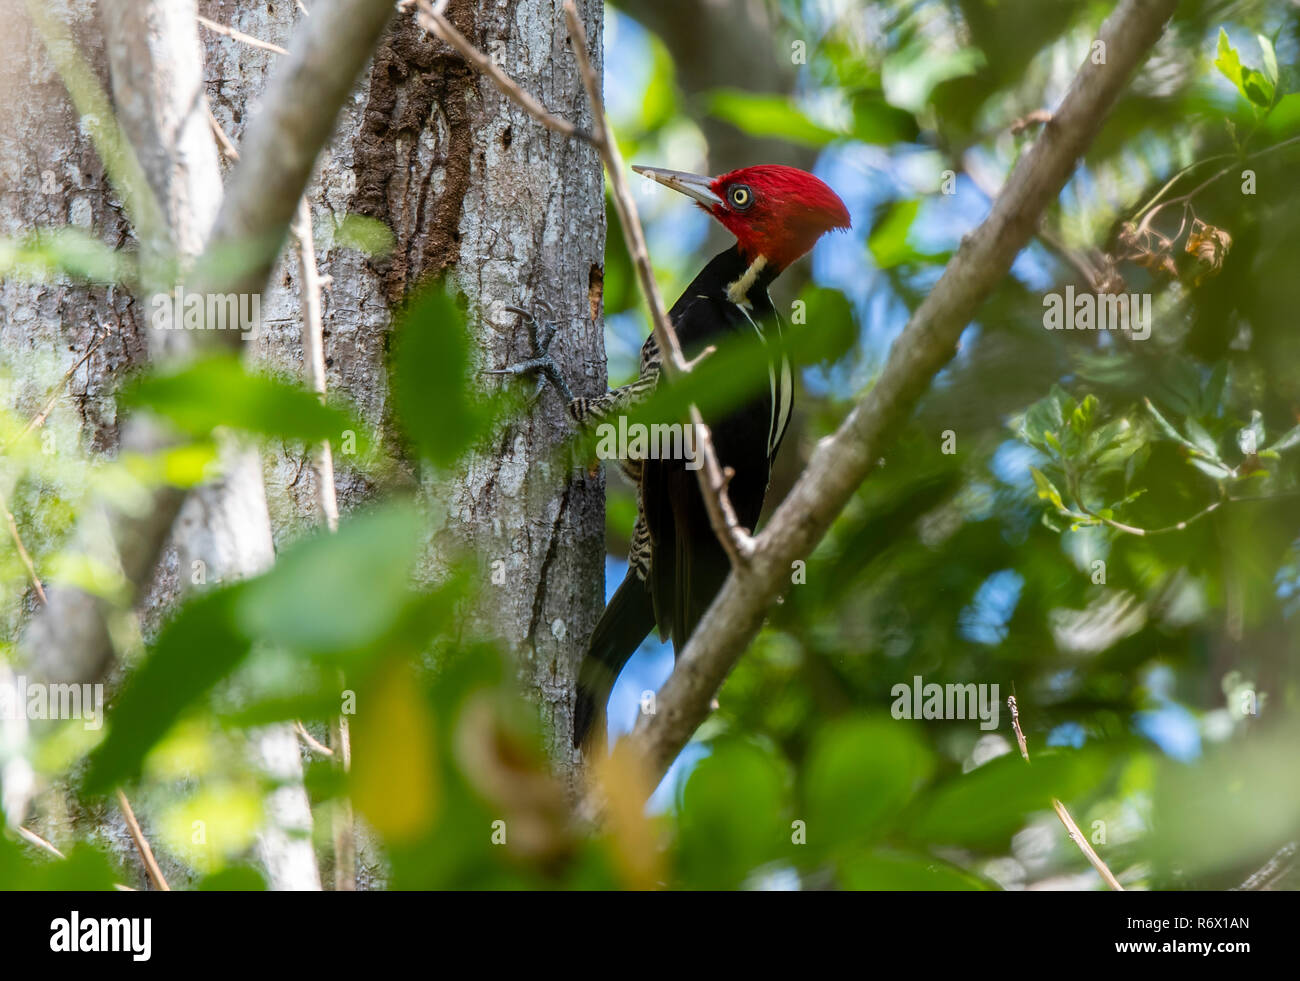 A Bright Red Crested Male Pale-billed Woodpecker (Campephilus guatemalensis) Foraging for Food on a Tree in Punta de Mita, Nayarit, Mexico - Stock Image